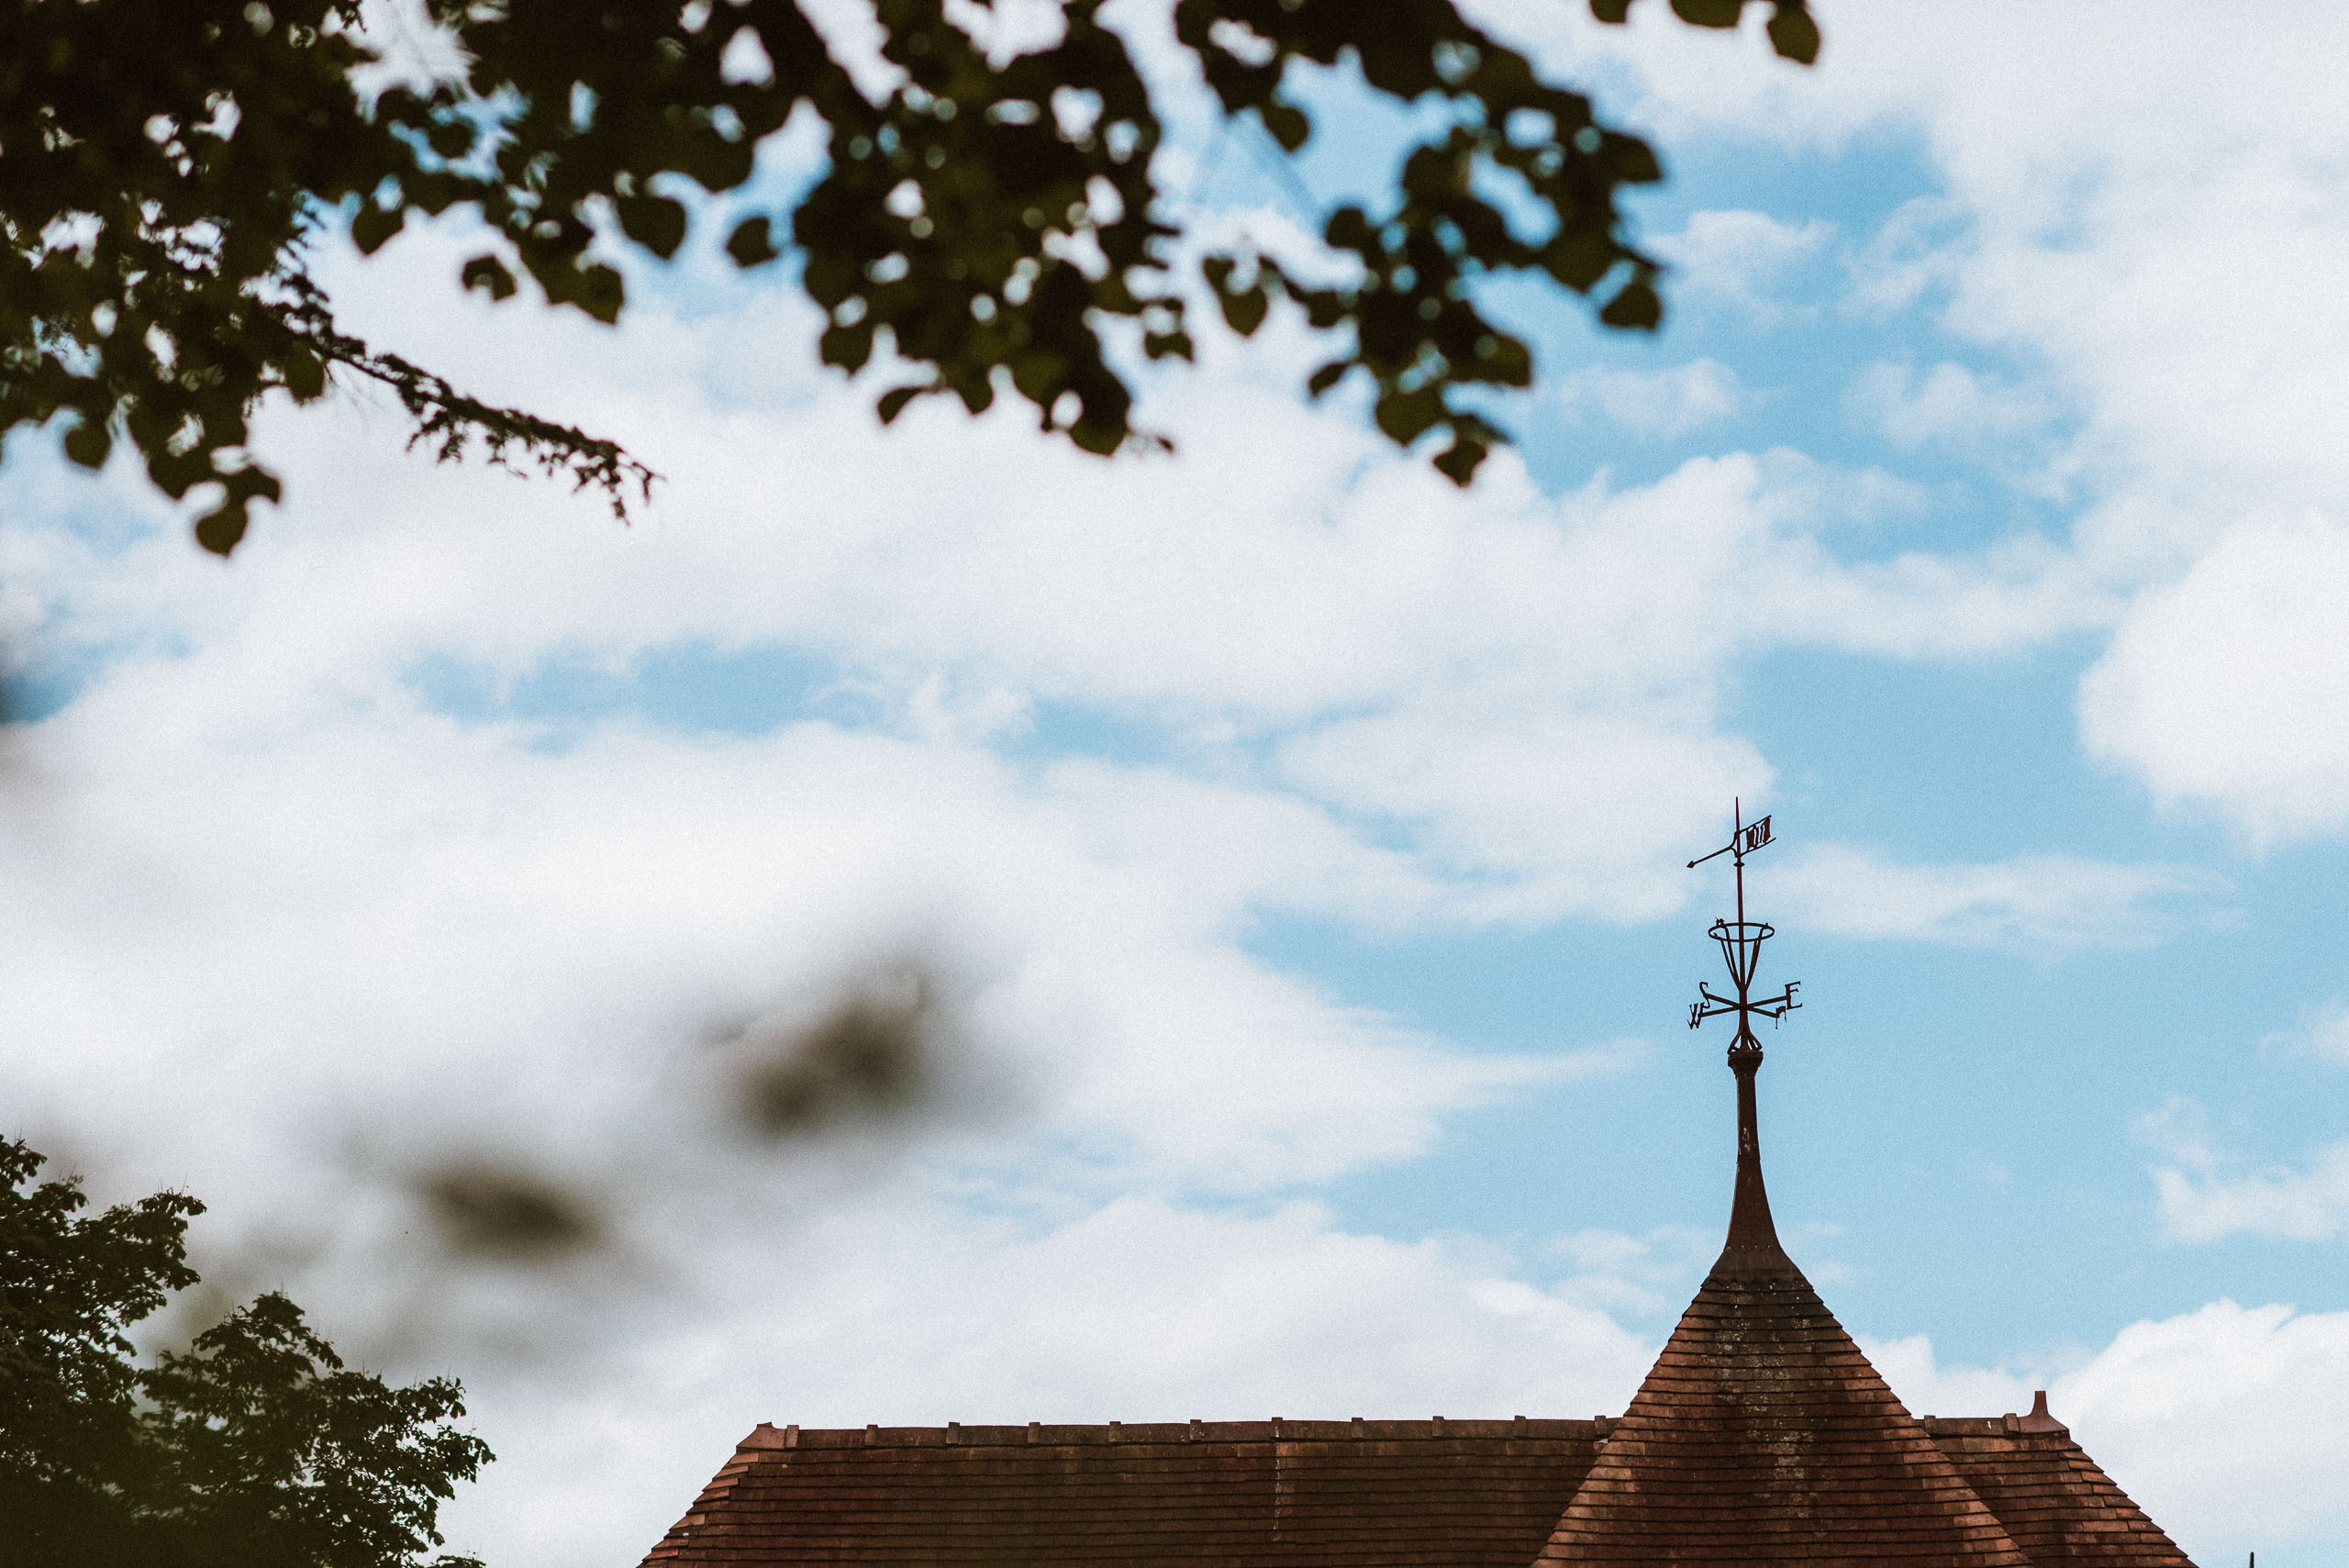 The roof of mere Court framed by leaves